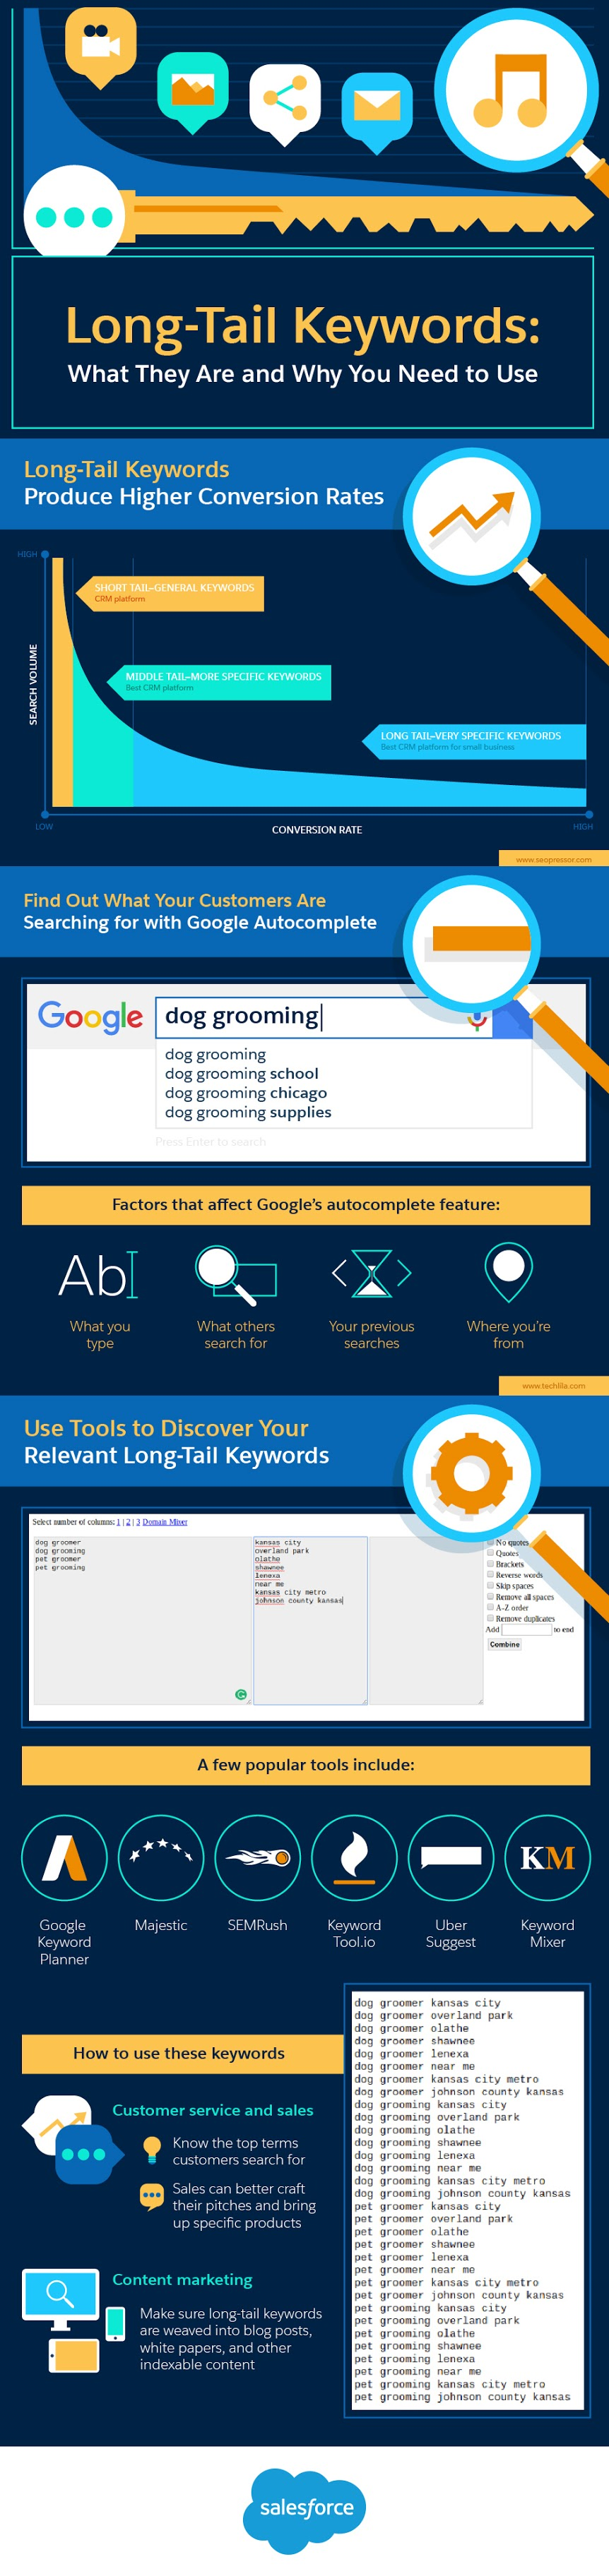 Long-Tail Keywords: What They Are and Why You Need to Use Them - infographic